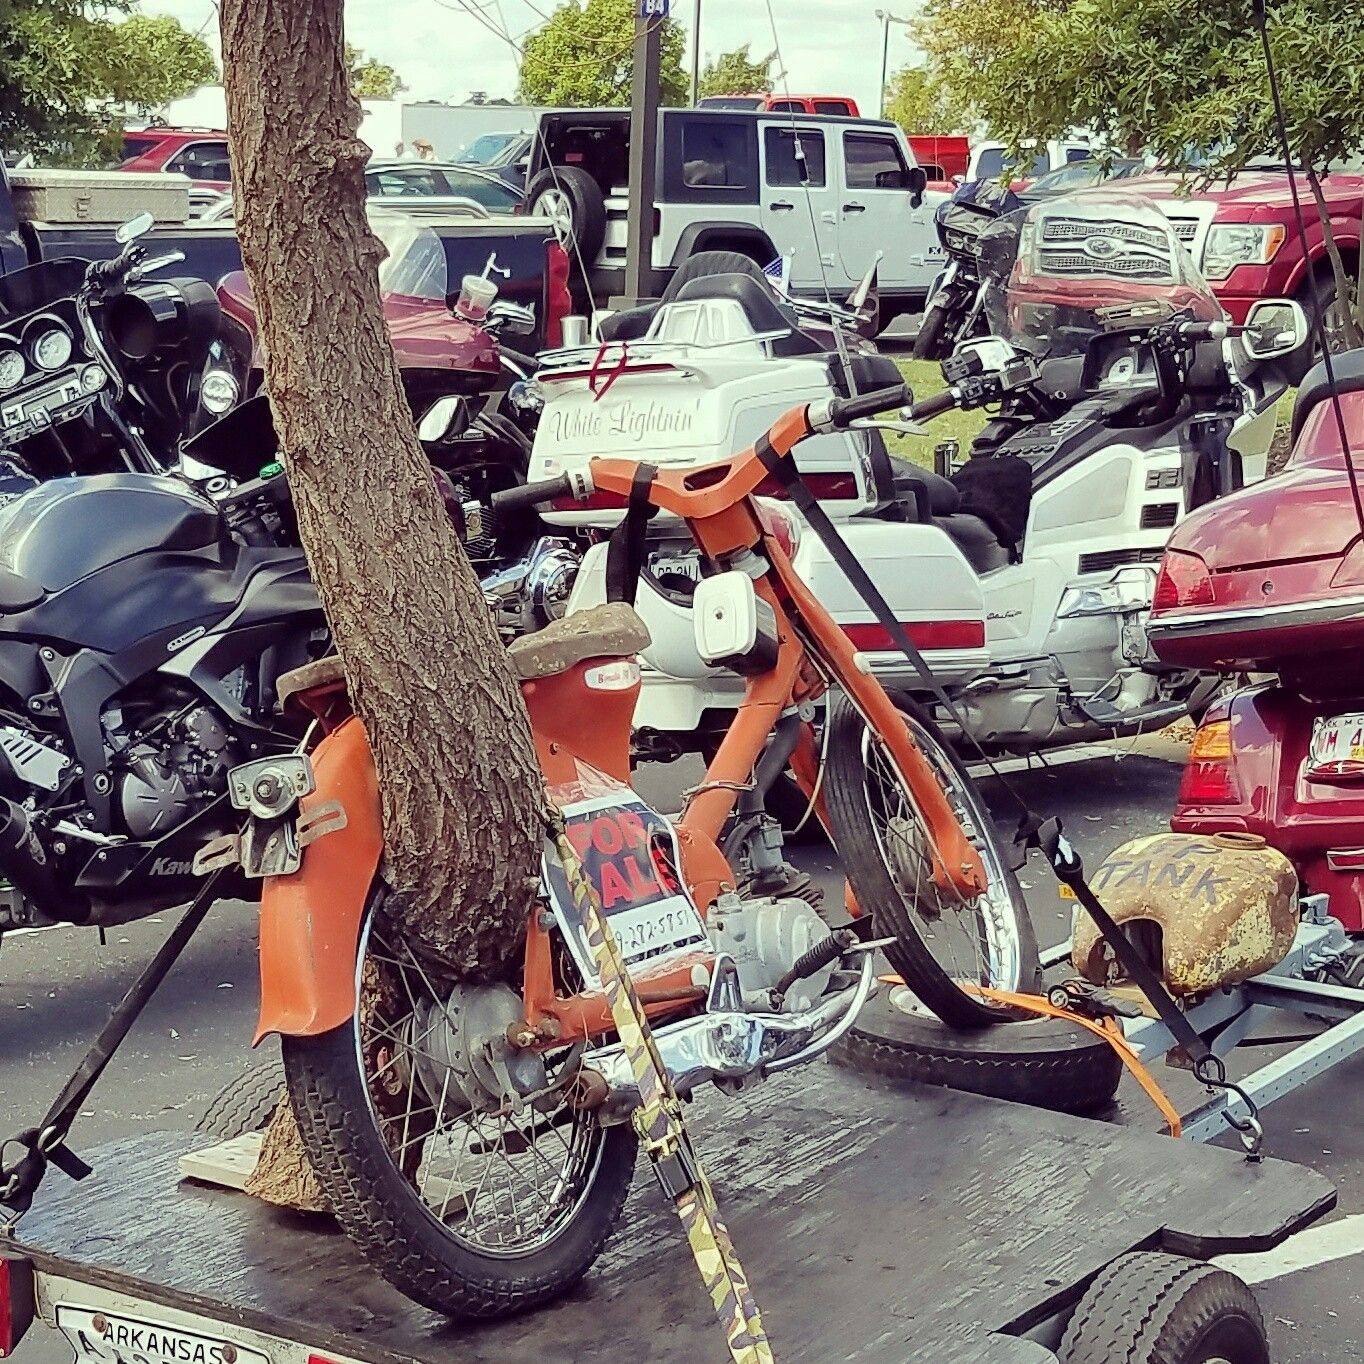 Weird moped, old tree